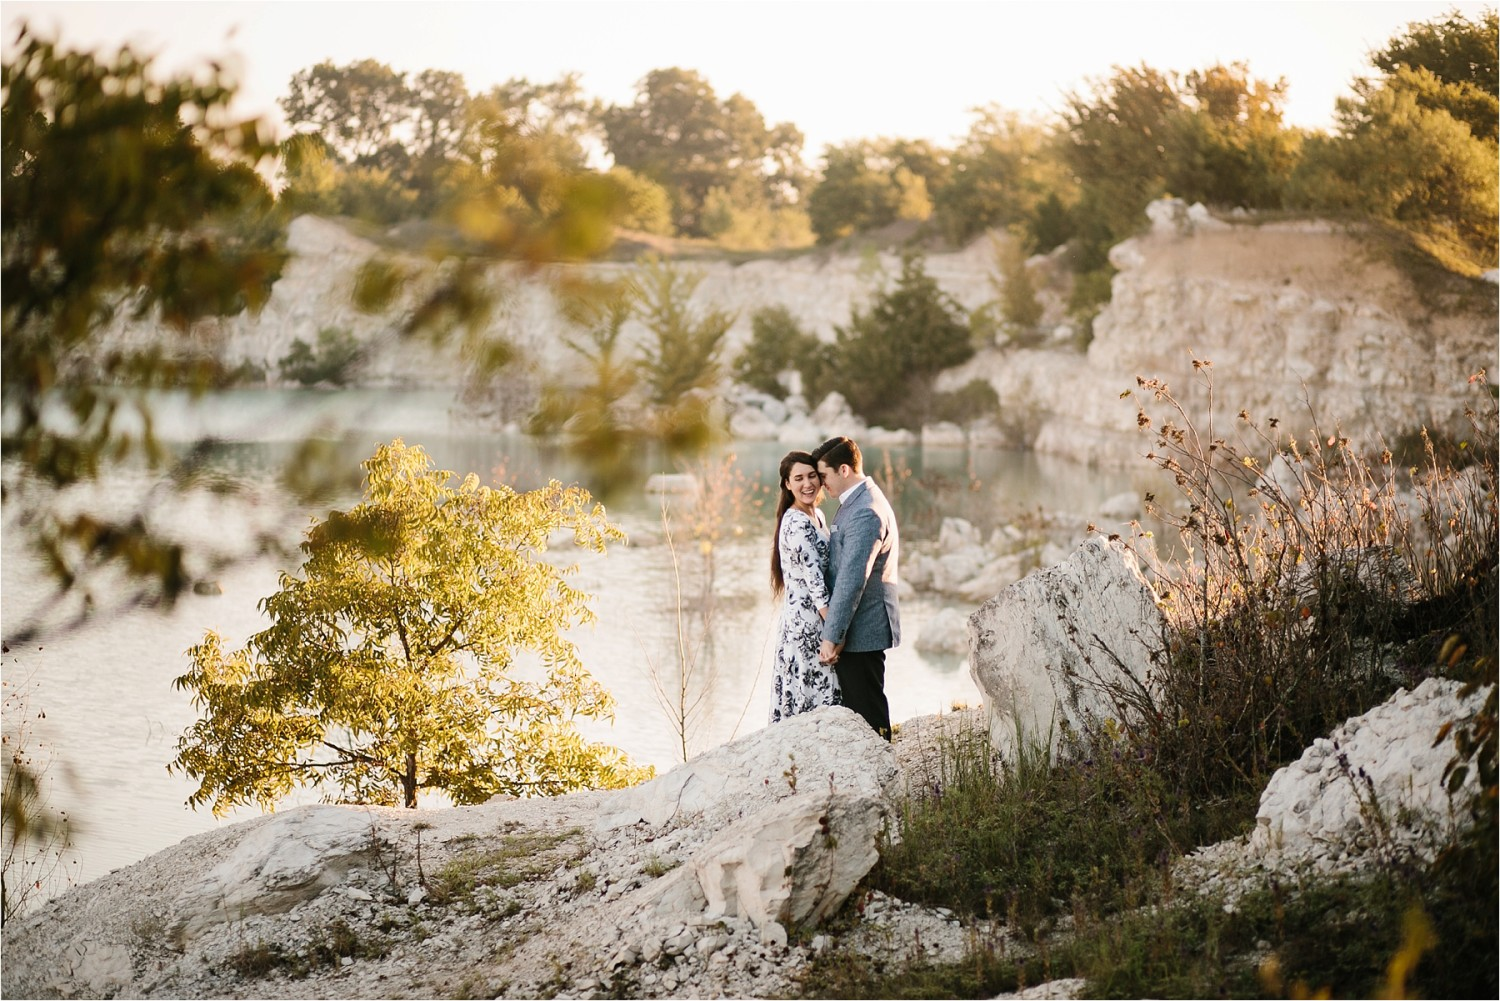 an-intimate-sunrise-session-by-north-texas-wedding-photographer-rachel-meagan-photography-_-25